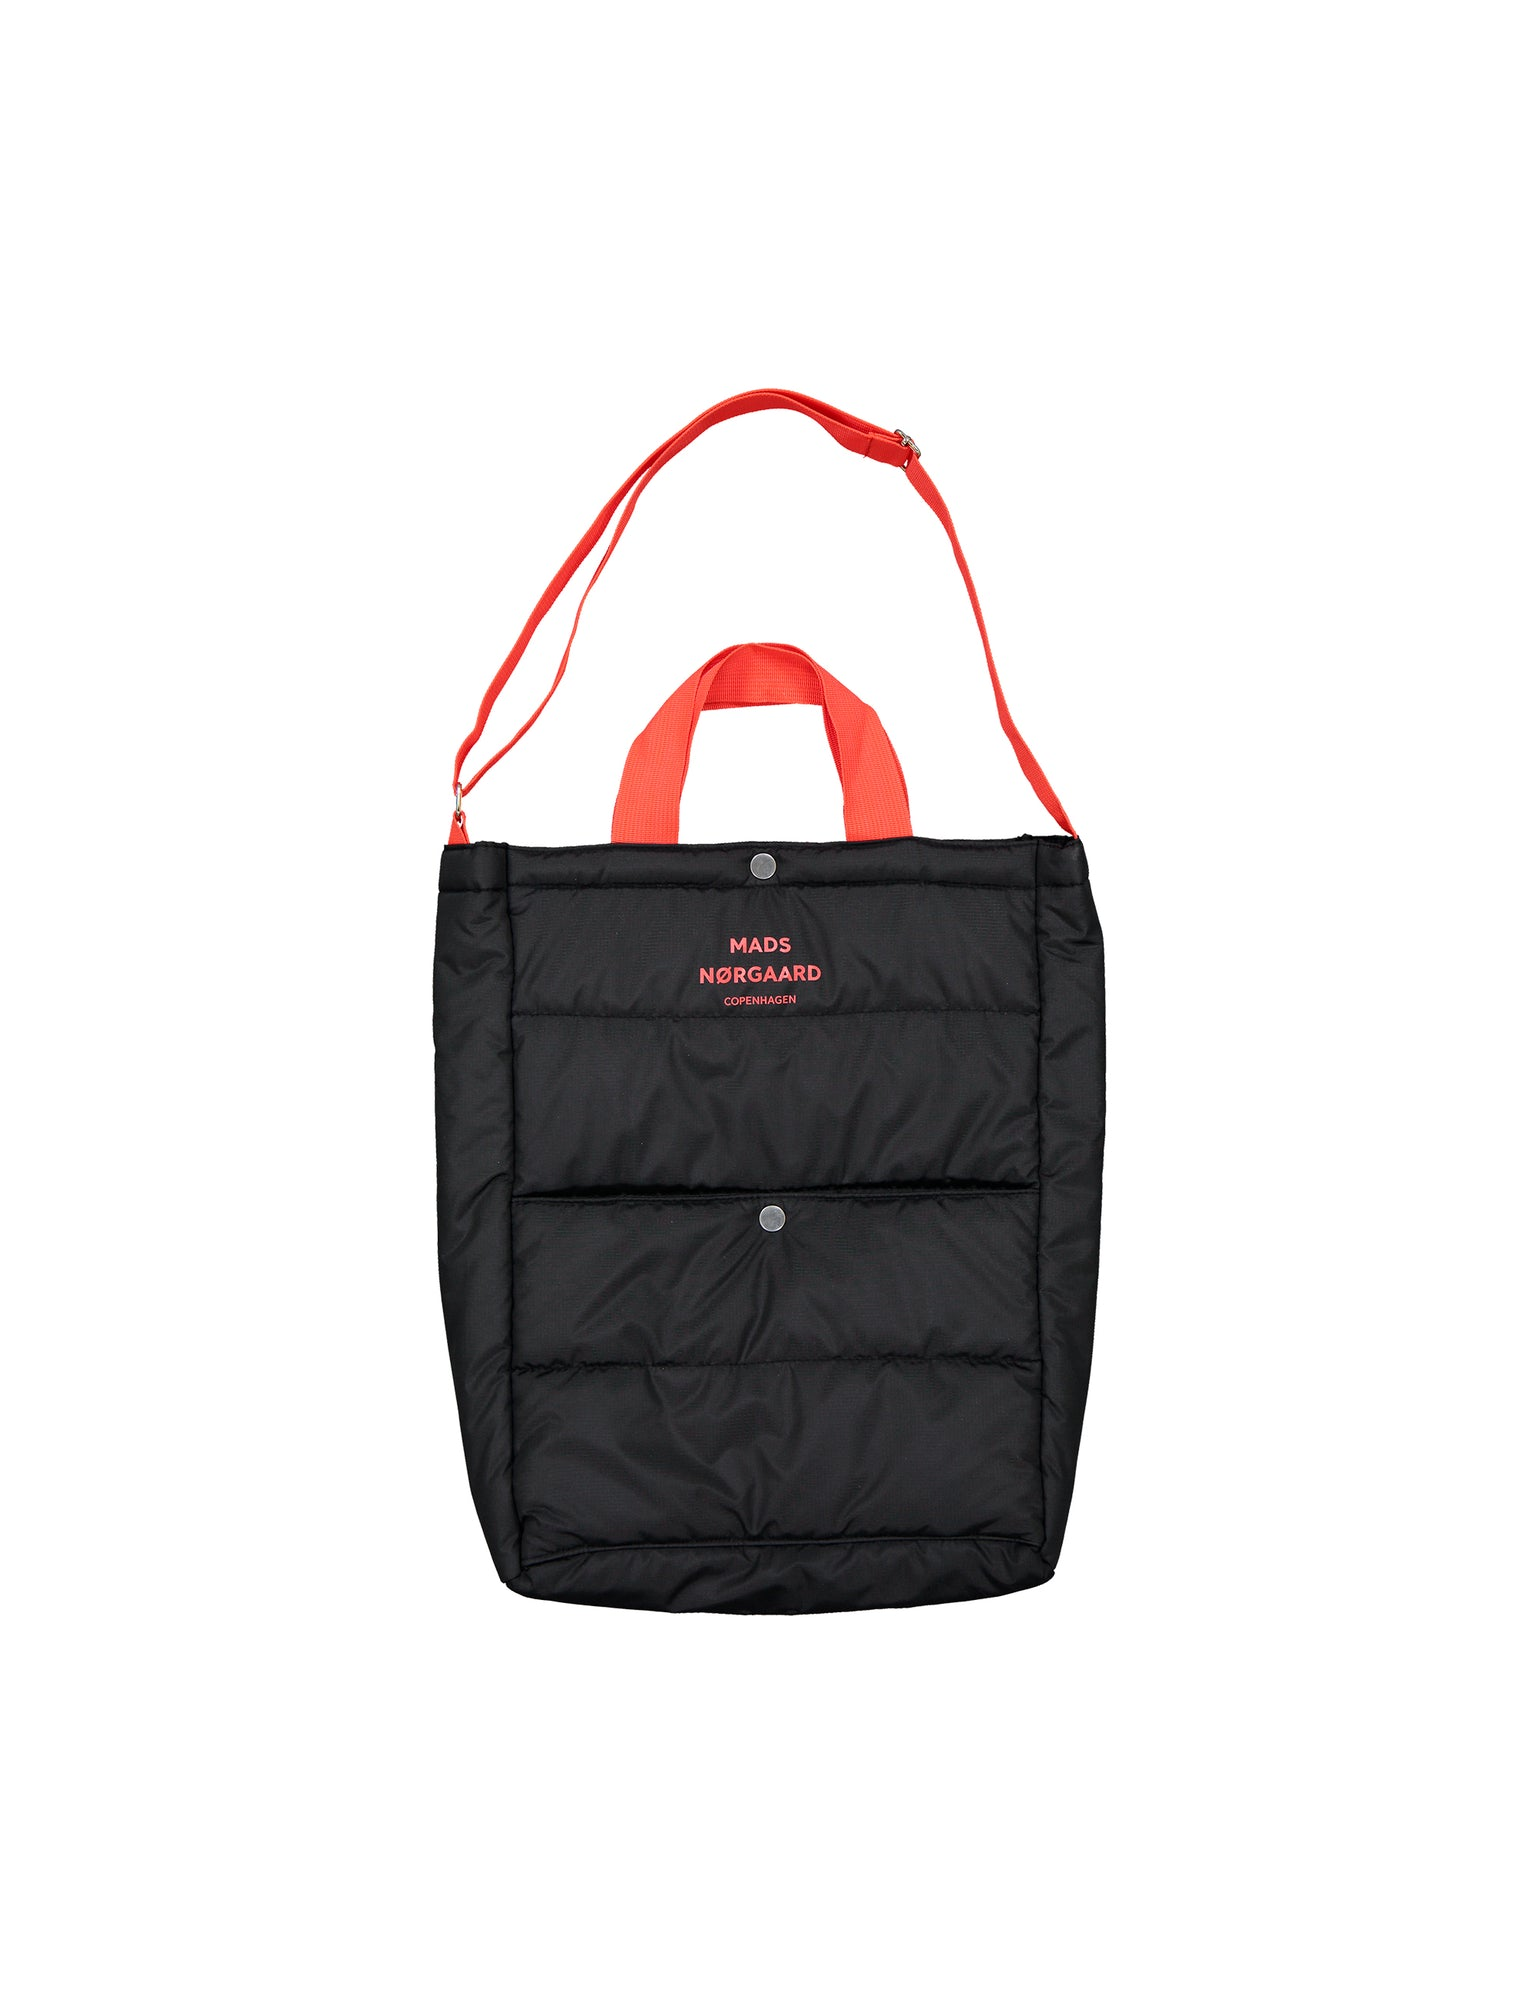 Töte Bag I, Black/Red